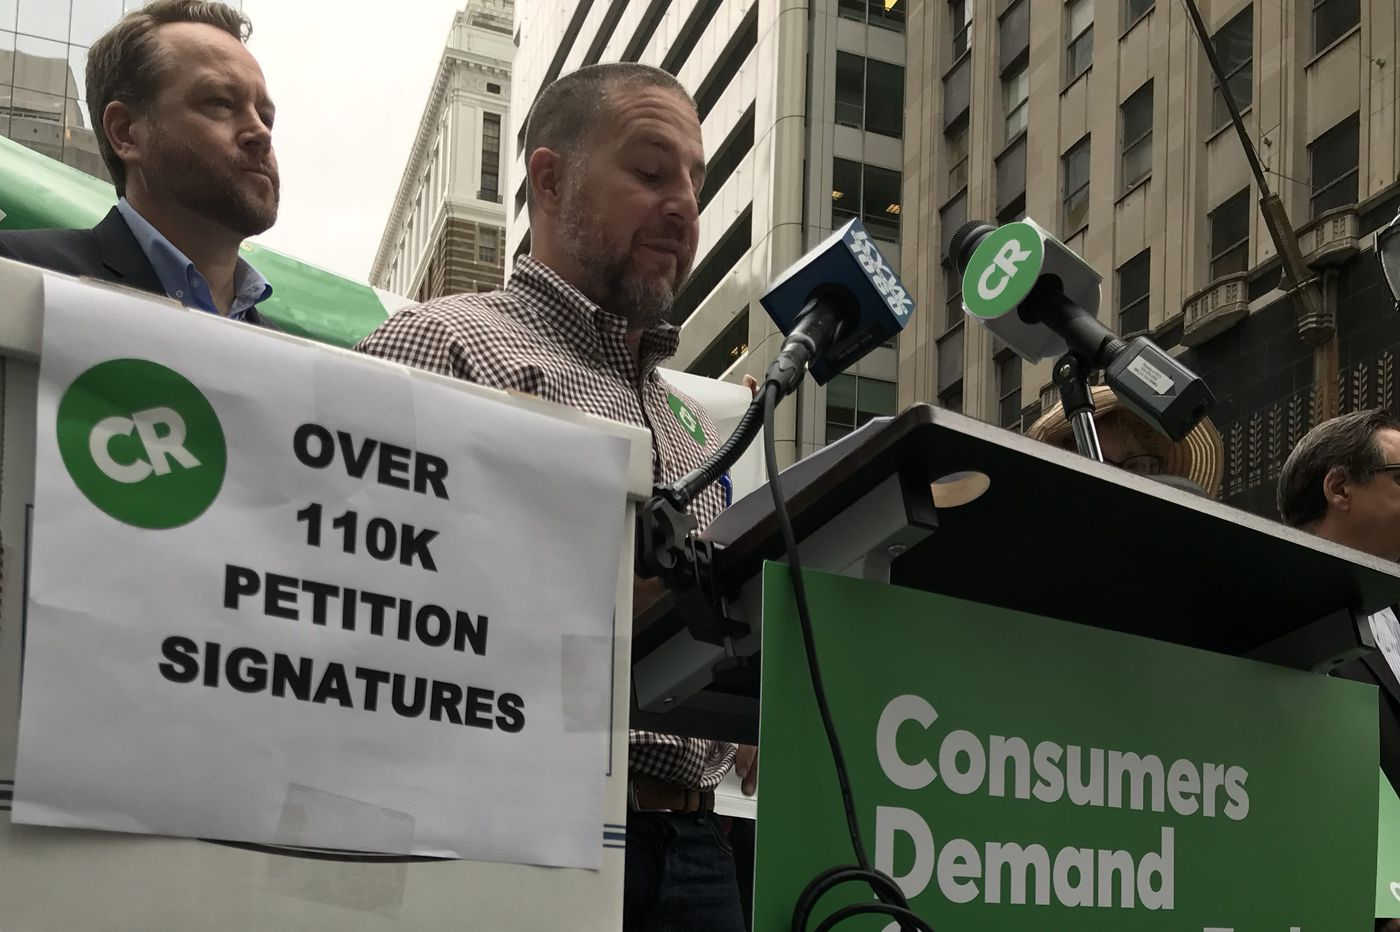 Consumer Reports' 'What the Fee' campaign targets Comcast